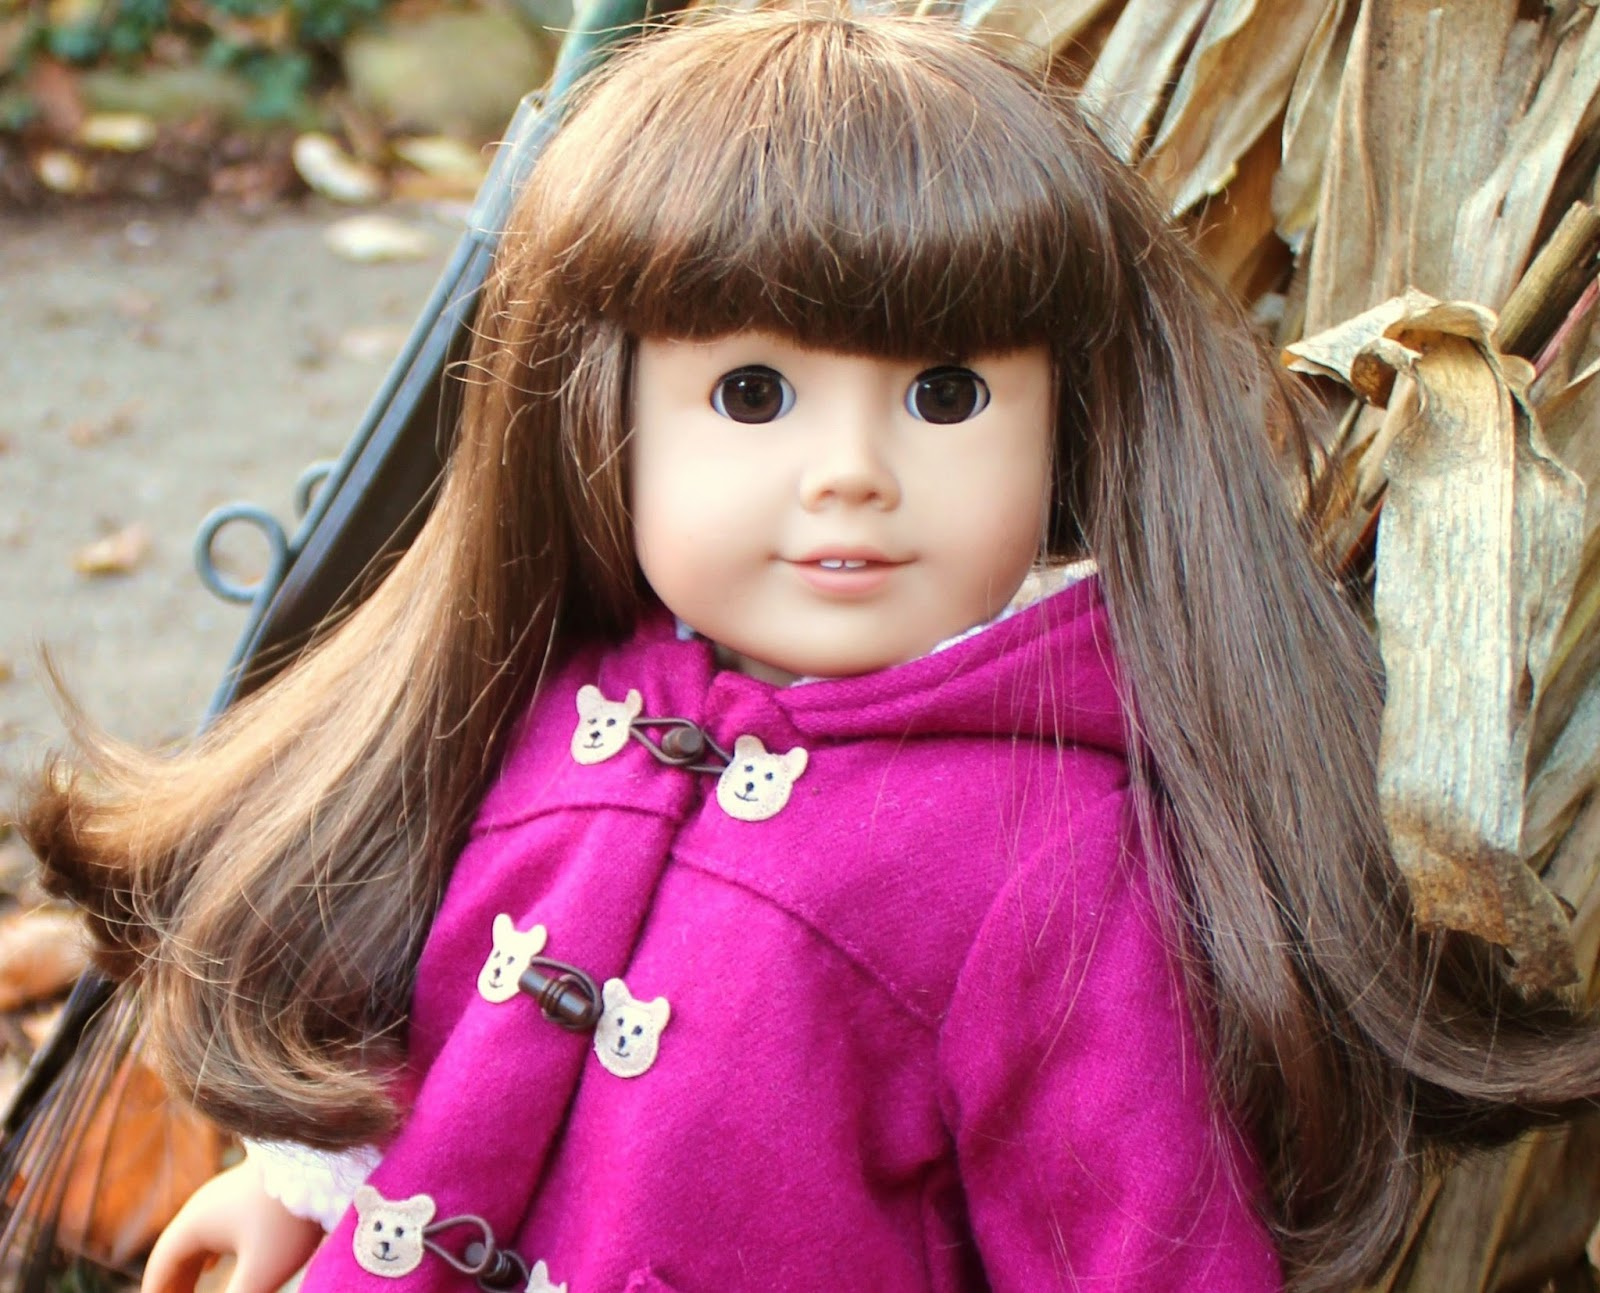 american girl yard sale finds American girl's first native hawaiian doll set to go on sale the nanea american girl doll goes on sale chicago news cps inspections 'blitz' finds rat.